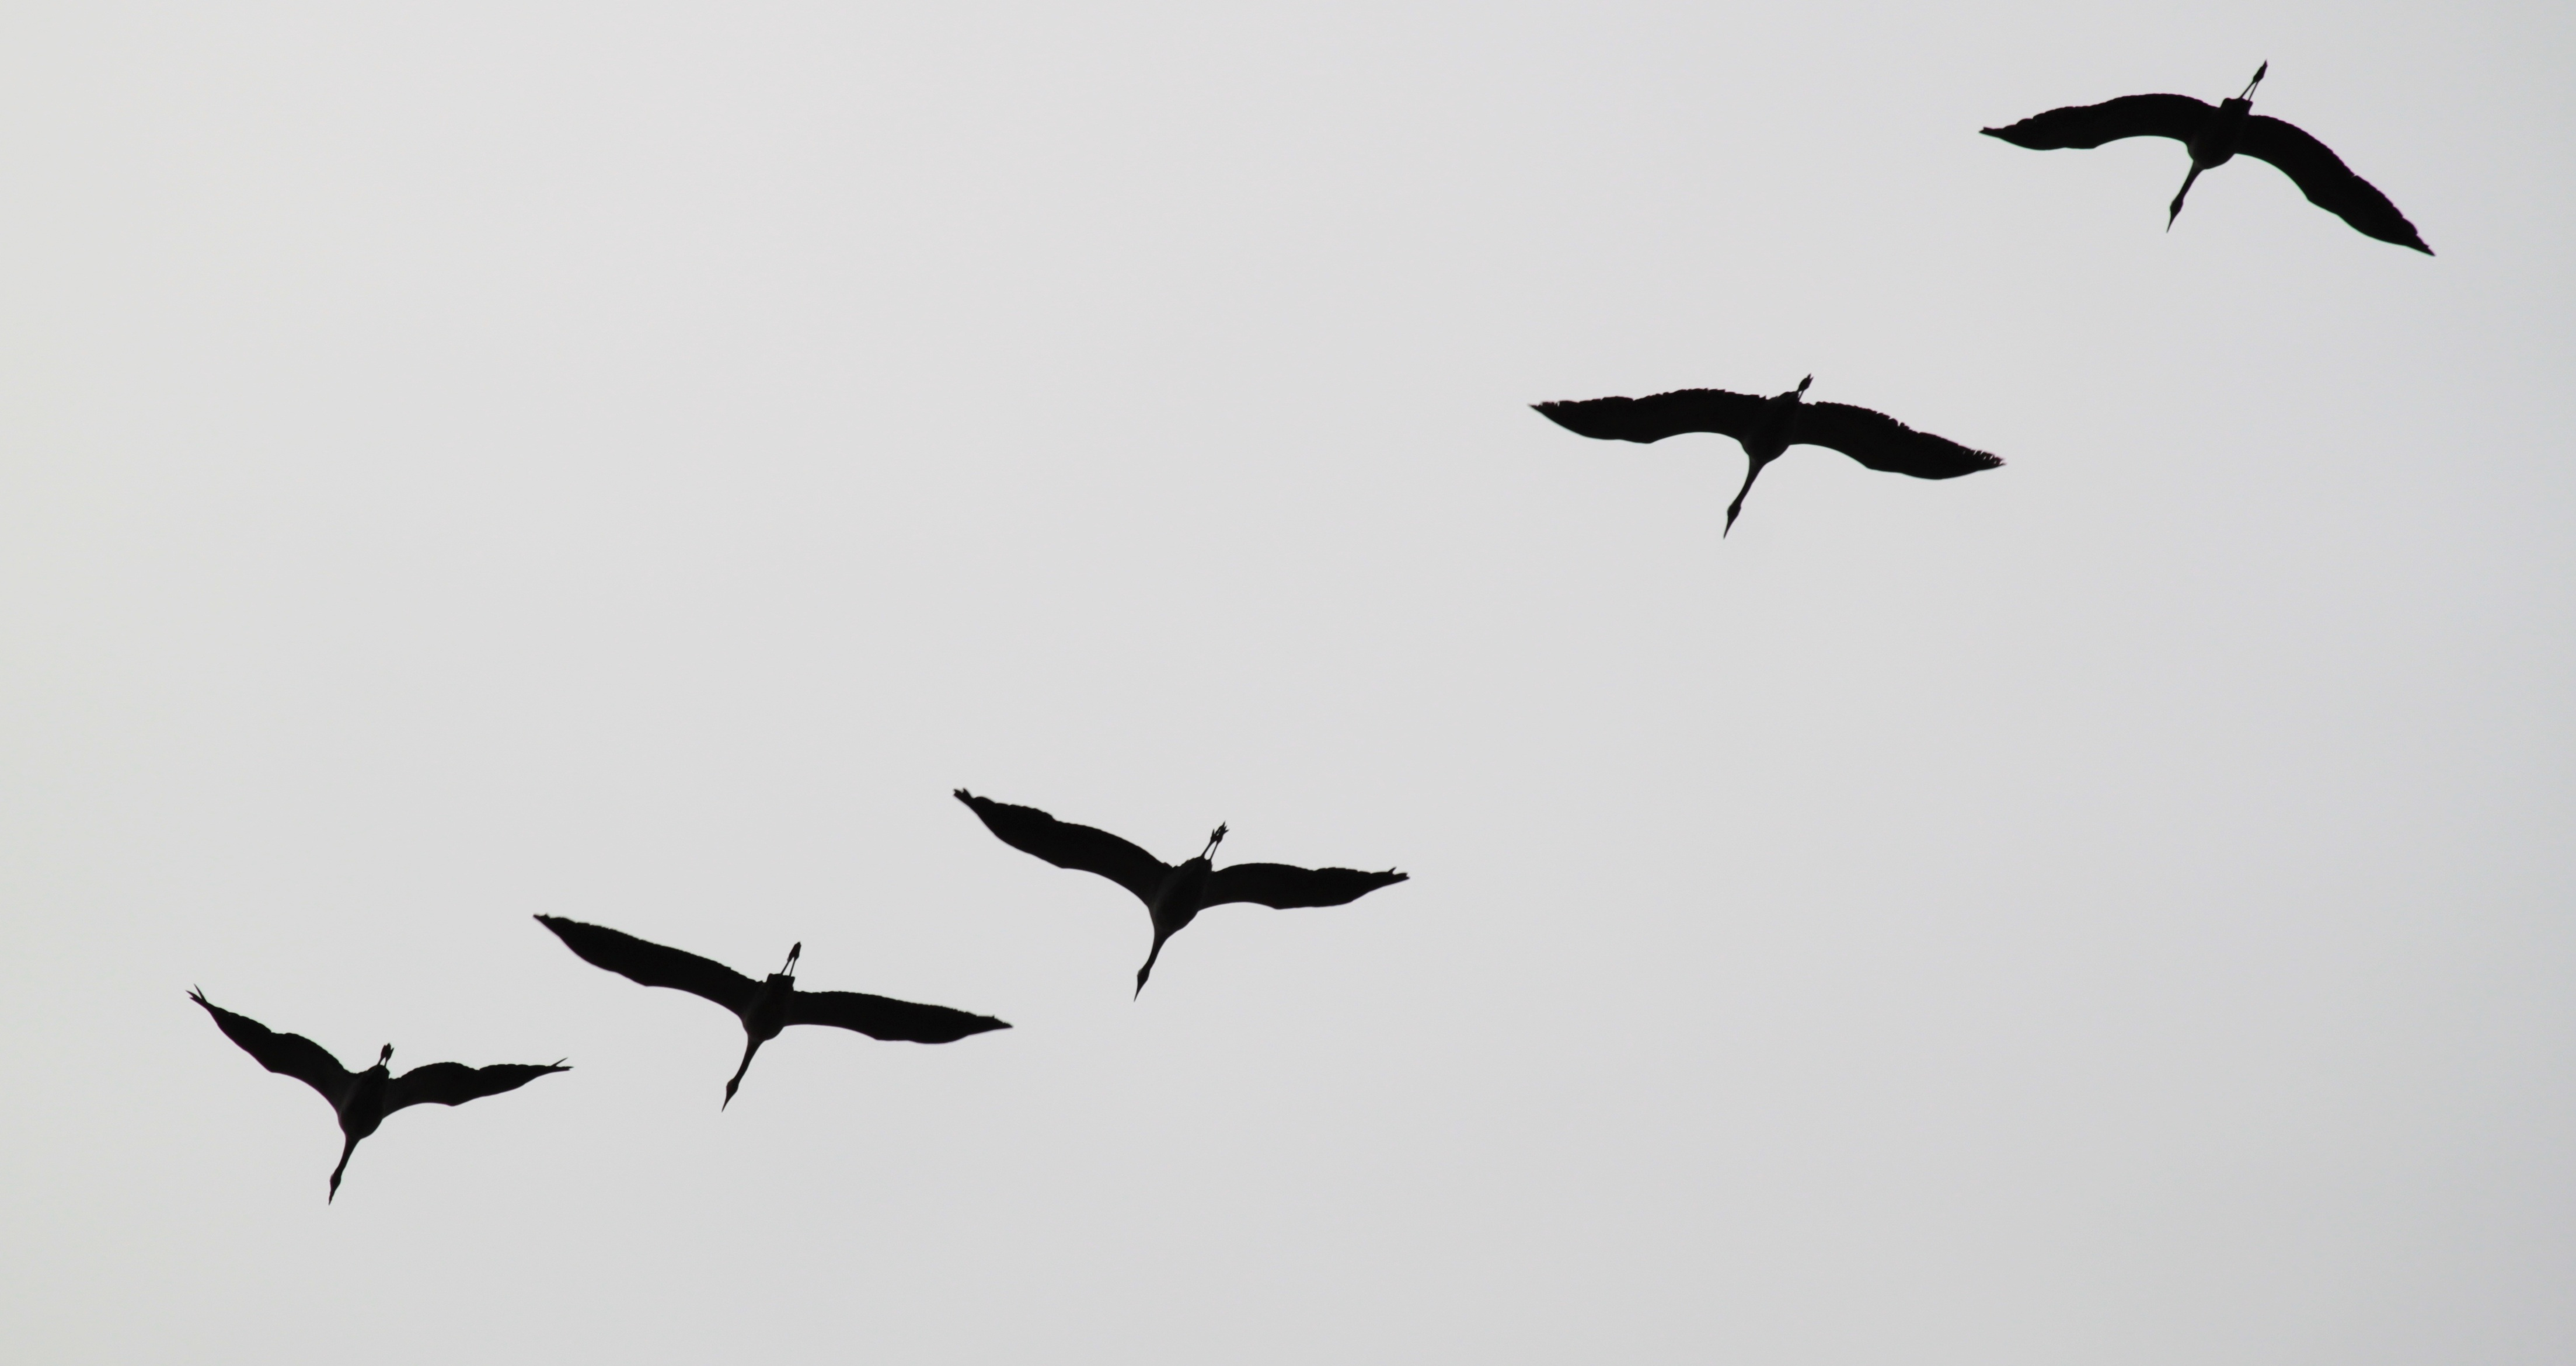 free photo birds flying sky nature group free download jooinn